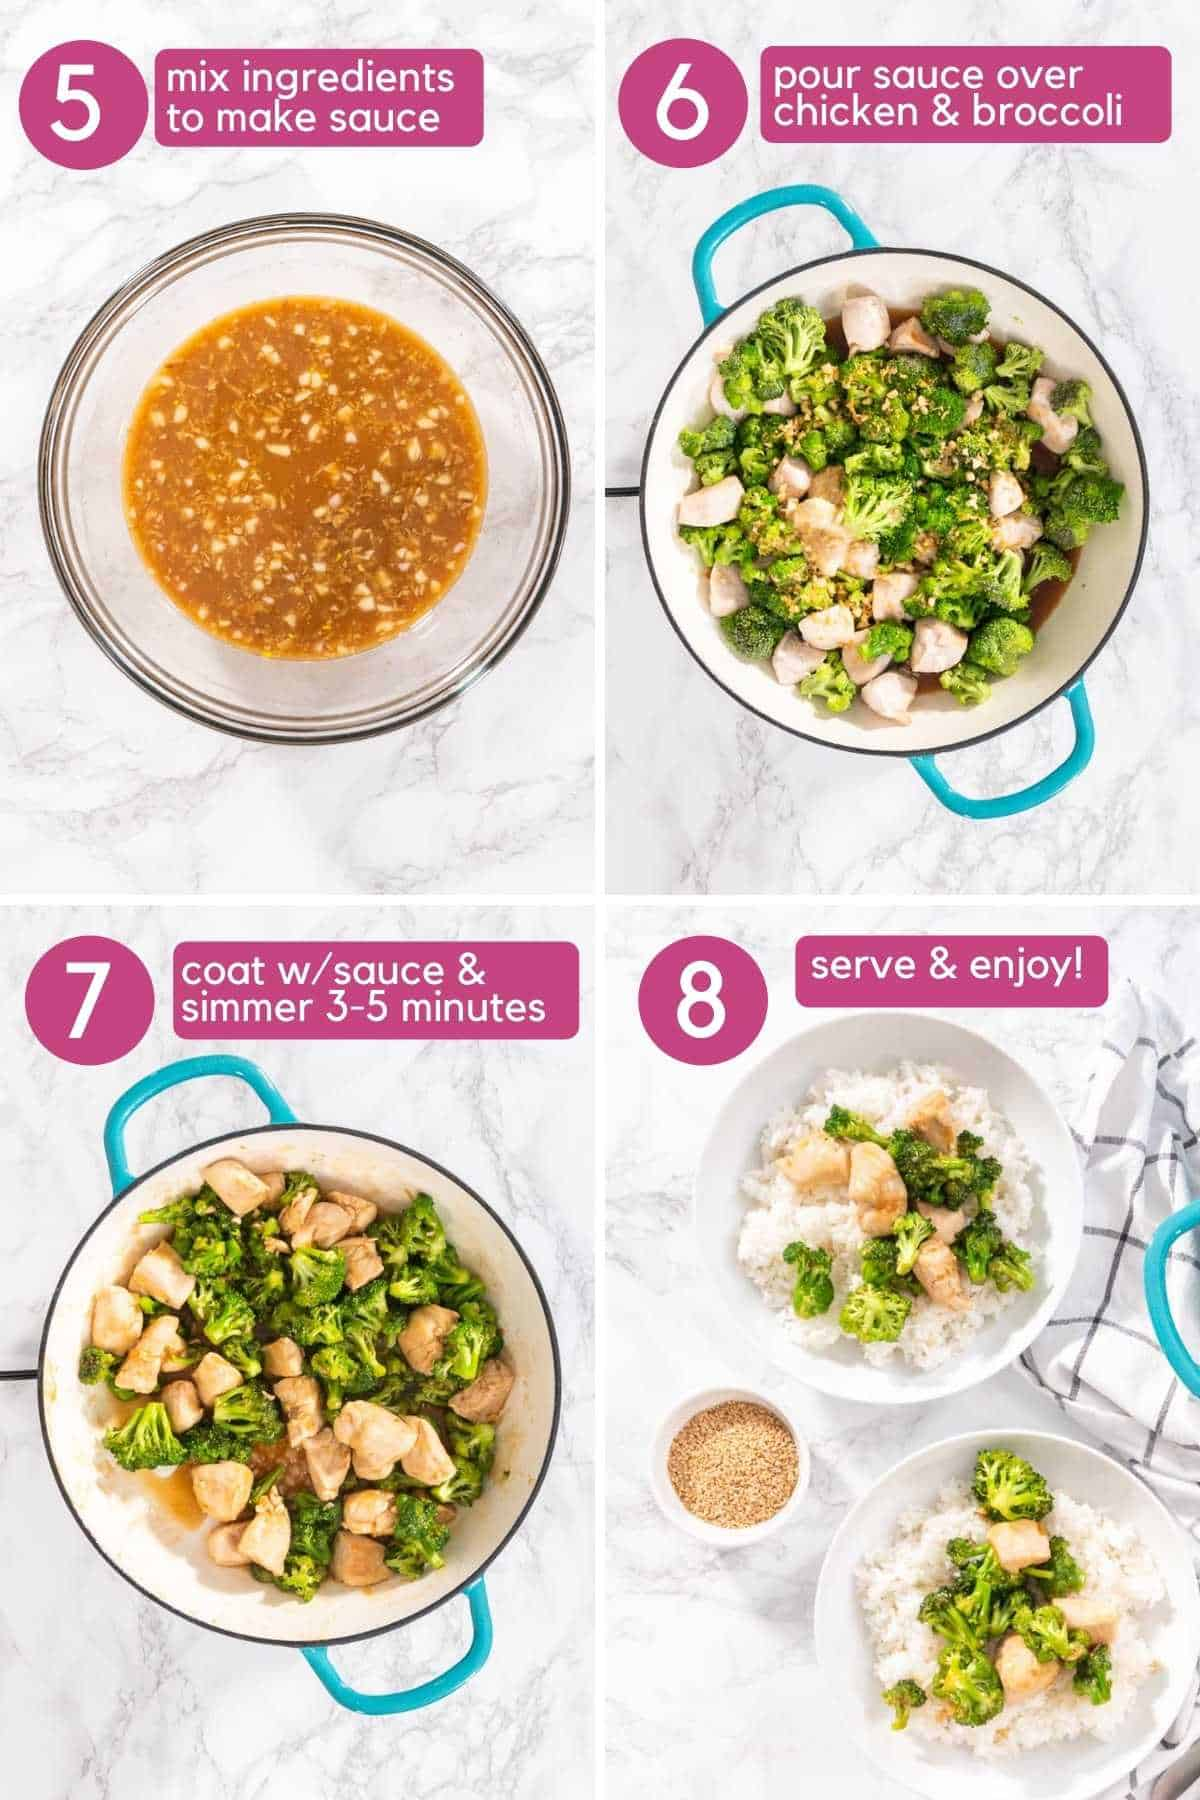 Add sauce to chicken and broccoli for Broccoli Chicken Stir Fry and serve over rice.